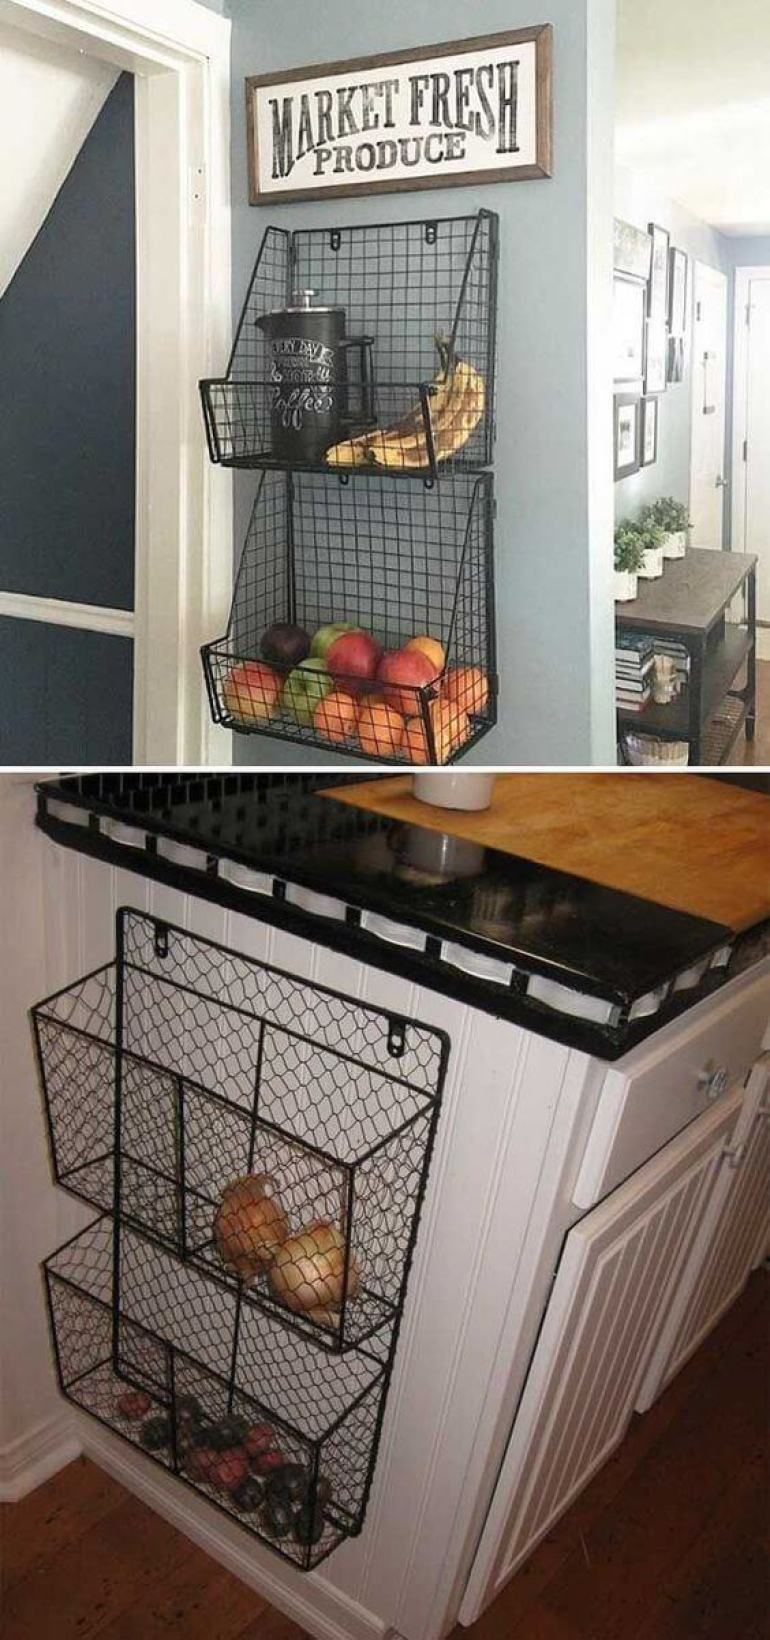 25 Small Kitchen Decor Ideas On a Budget to Maximize Existing the Space images